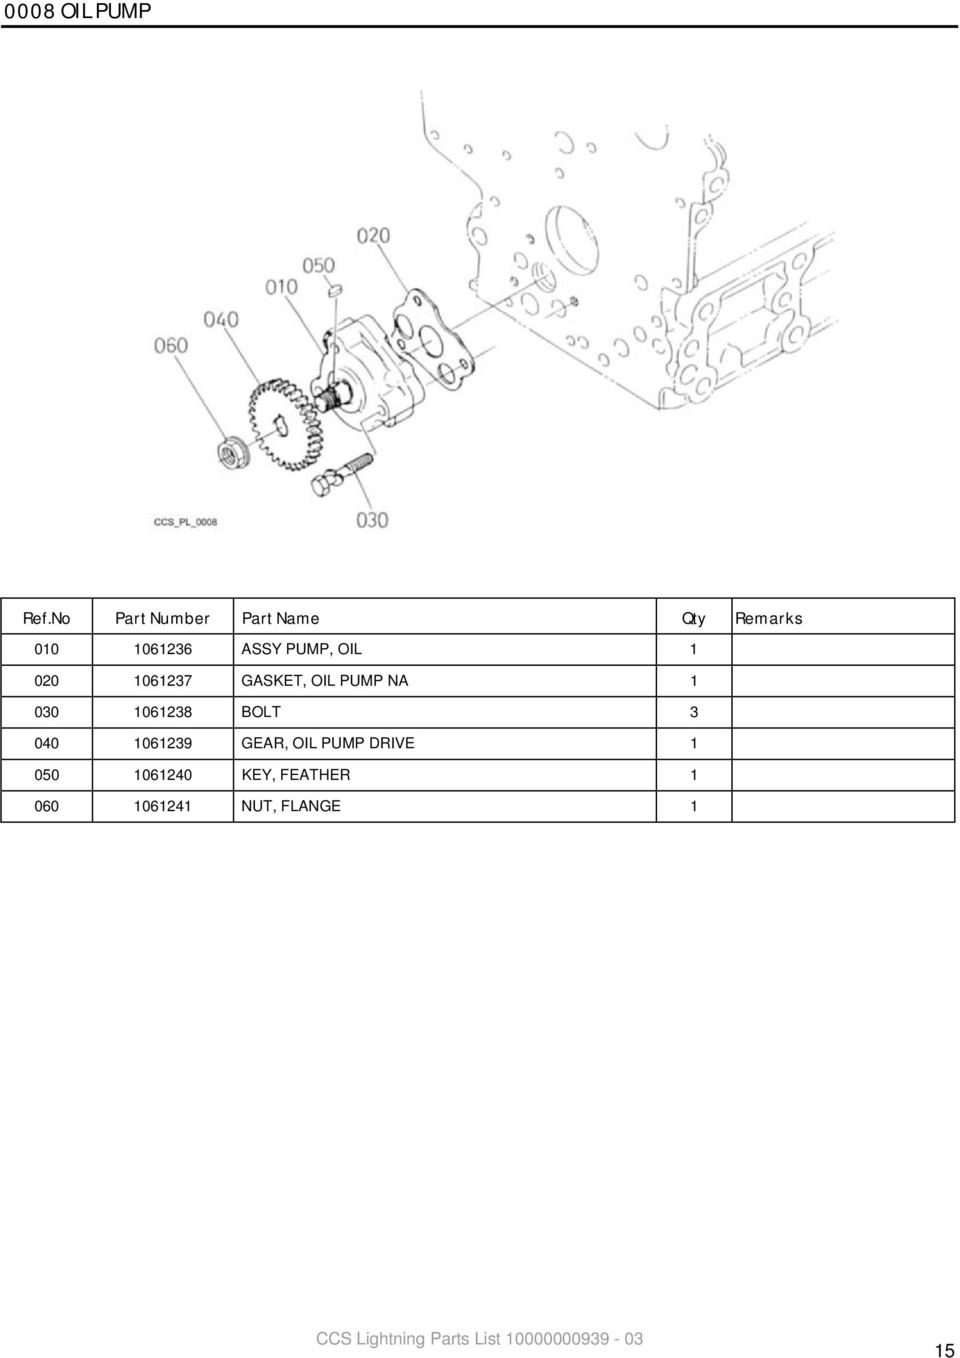 Ccs Lightning Parts List Pdf Wiring Diagram For An Rv Water Pump Along With Kubota Glow Plug Relay 3 040 1061239 Gear Oil Drive 1 050